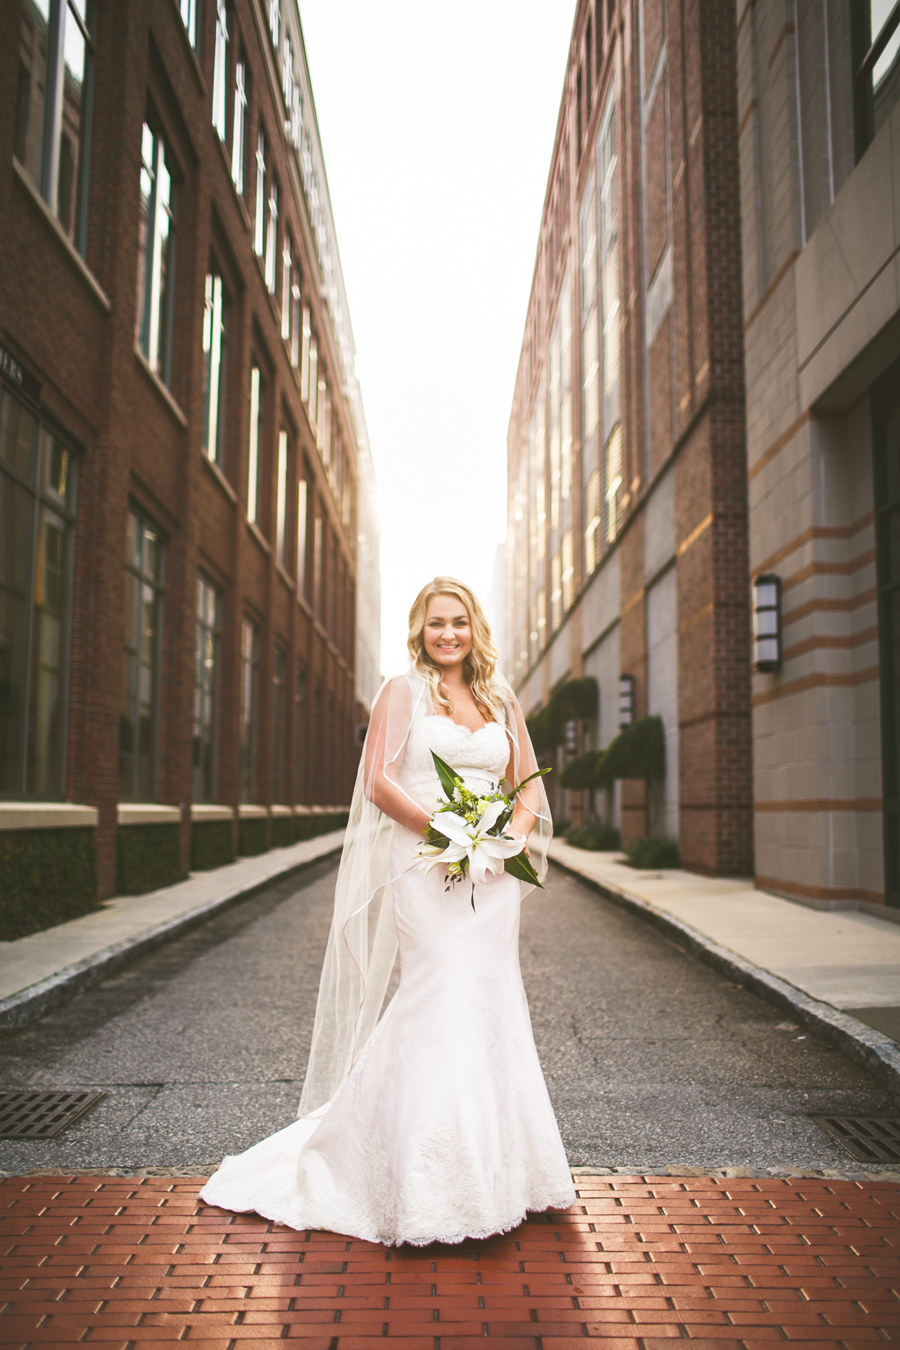 015-Sarah-historic-Charleston-bridal-portraits-by-Carolina-Photosmith-